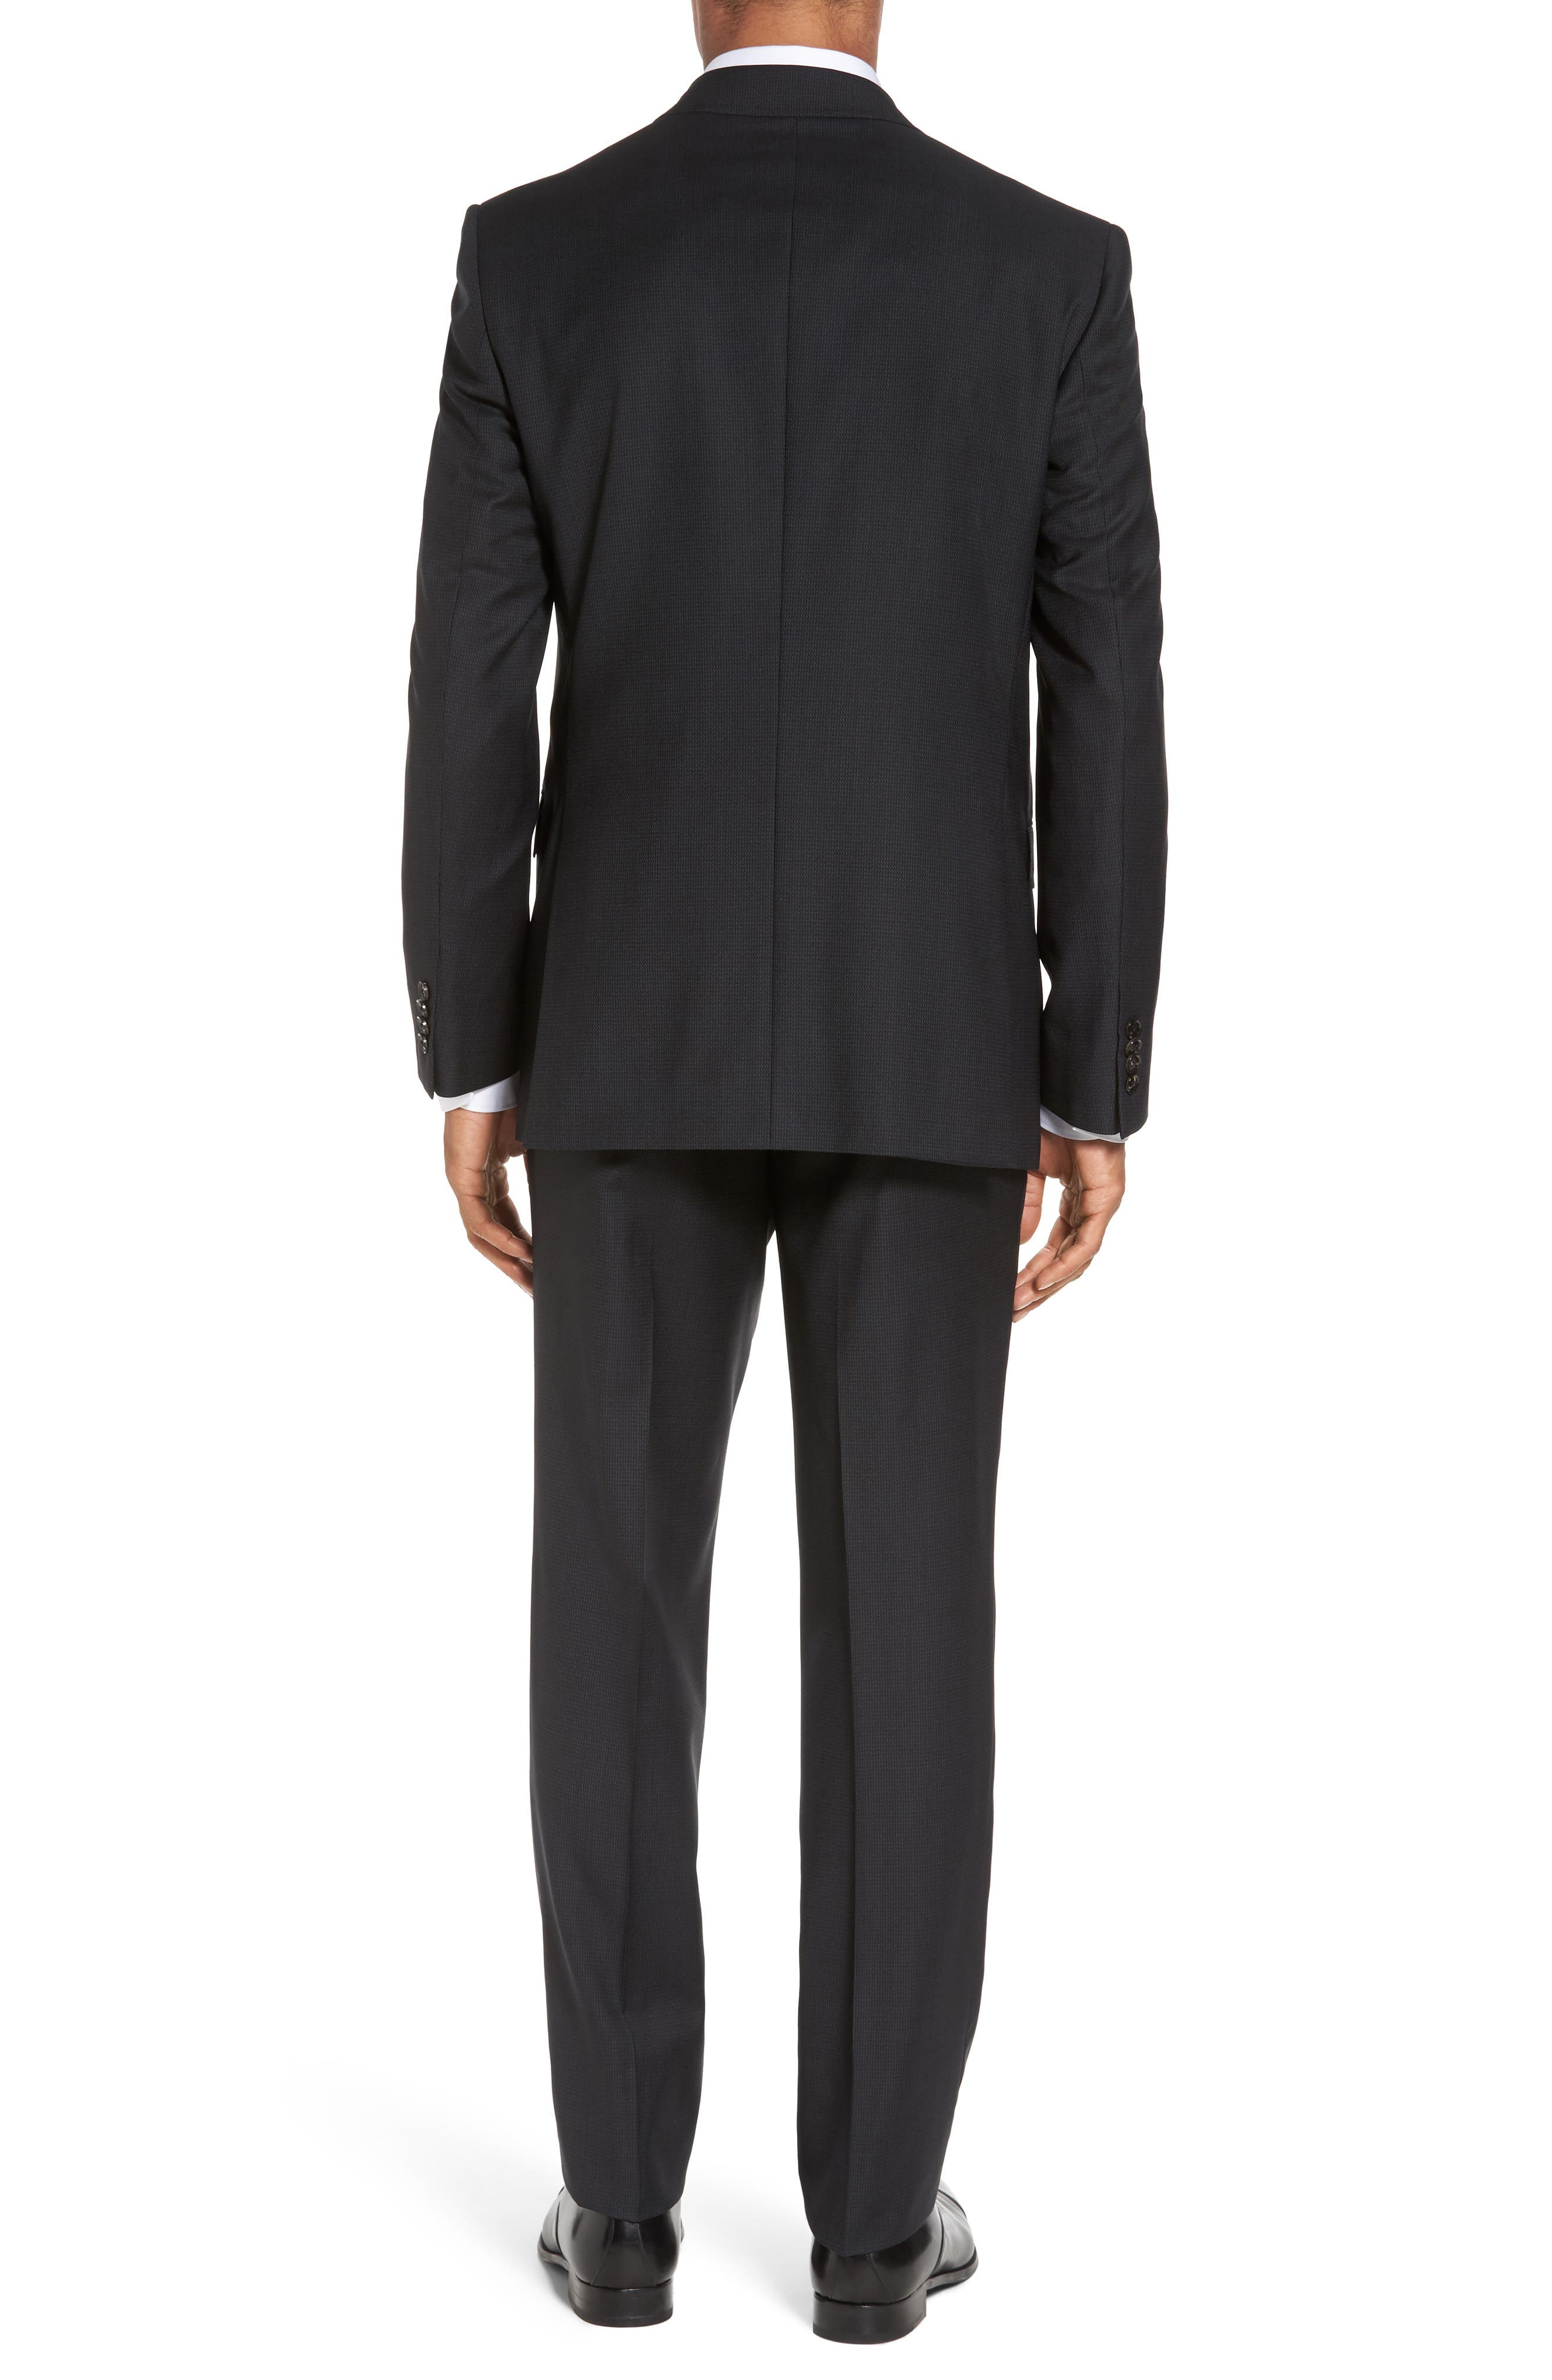 Jay Trim Fit Solid Wool Suit,                             Alternate thumbnail 2, color,                             Black Charcoal